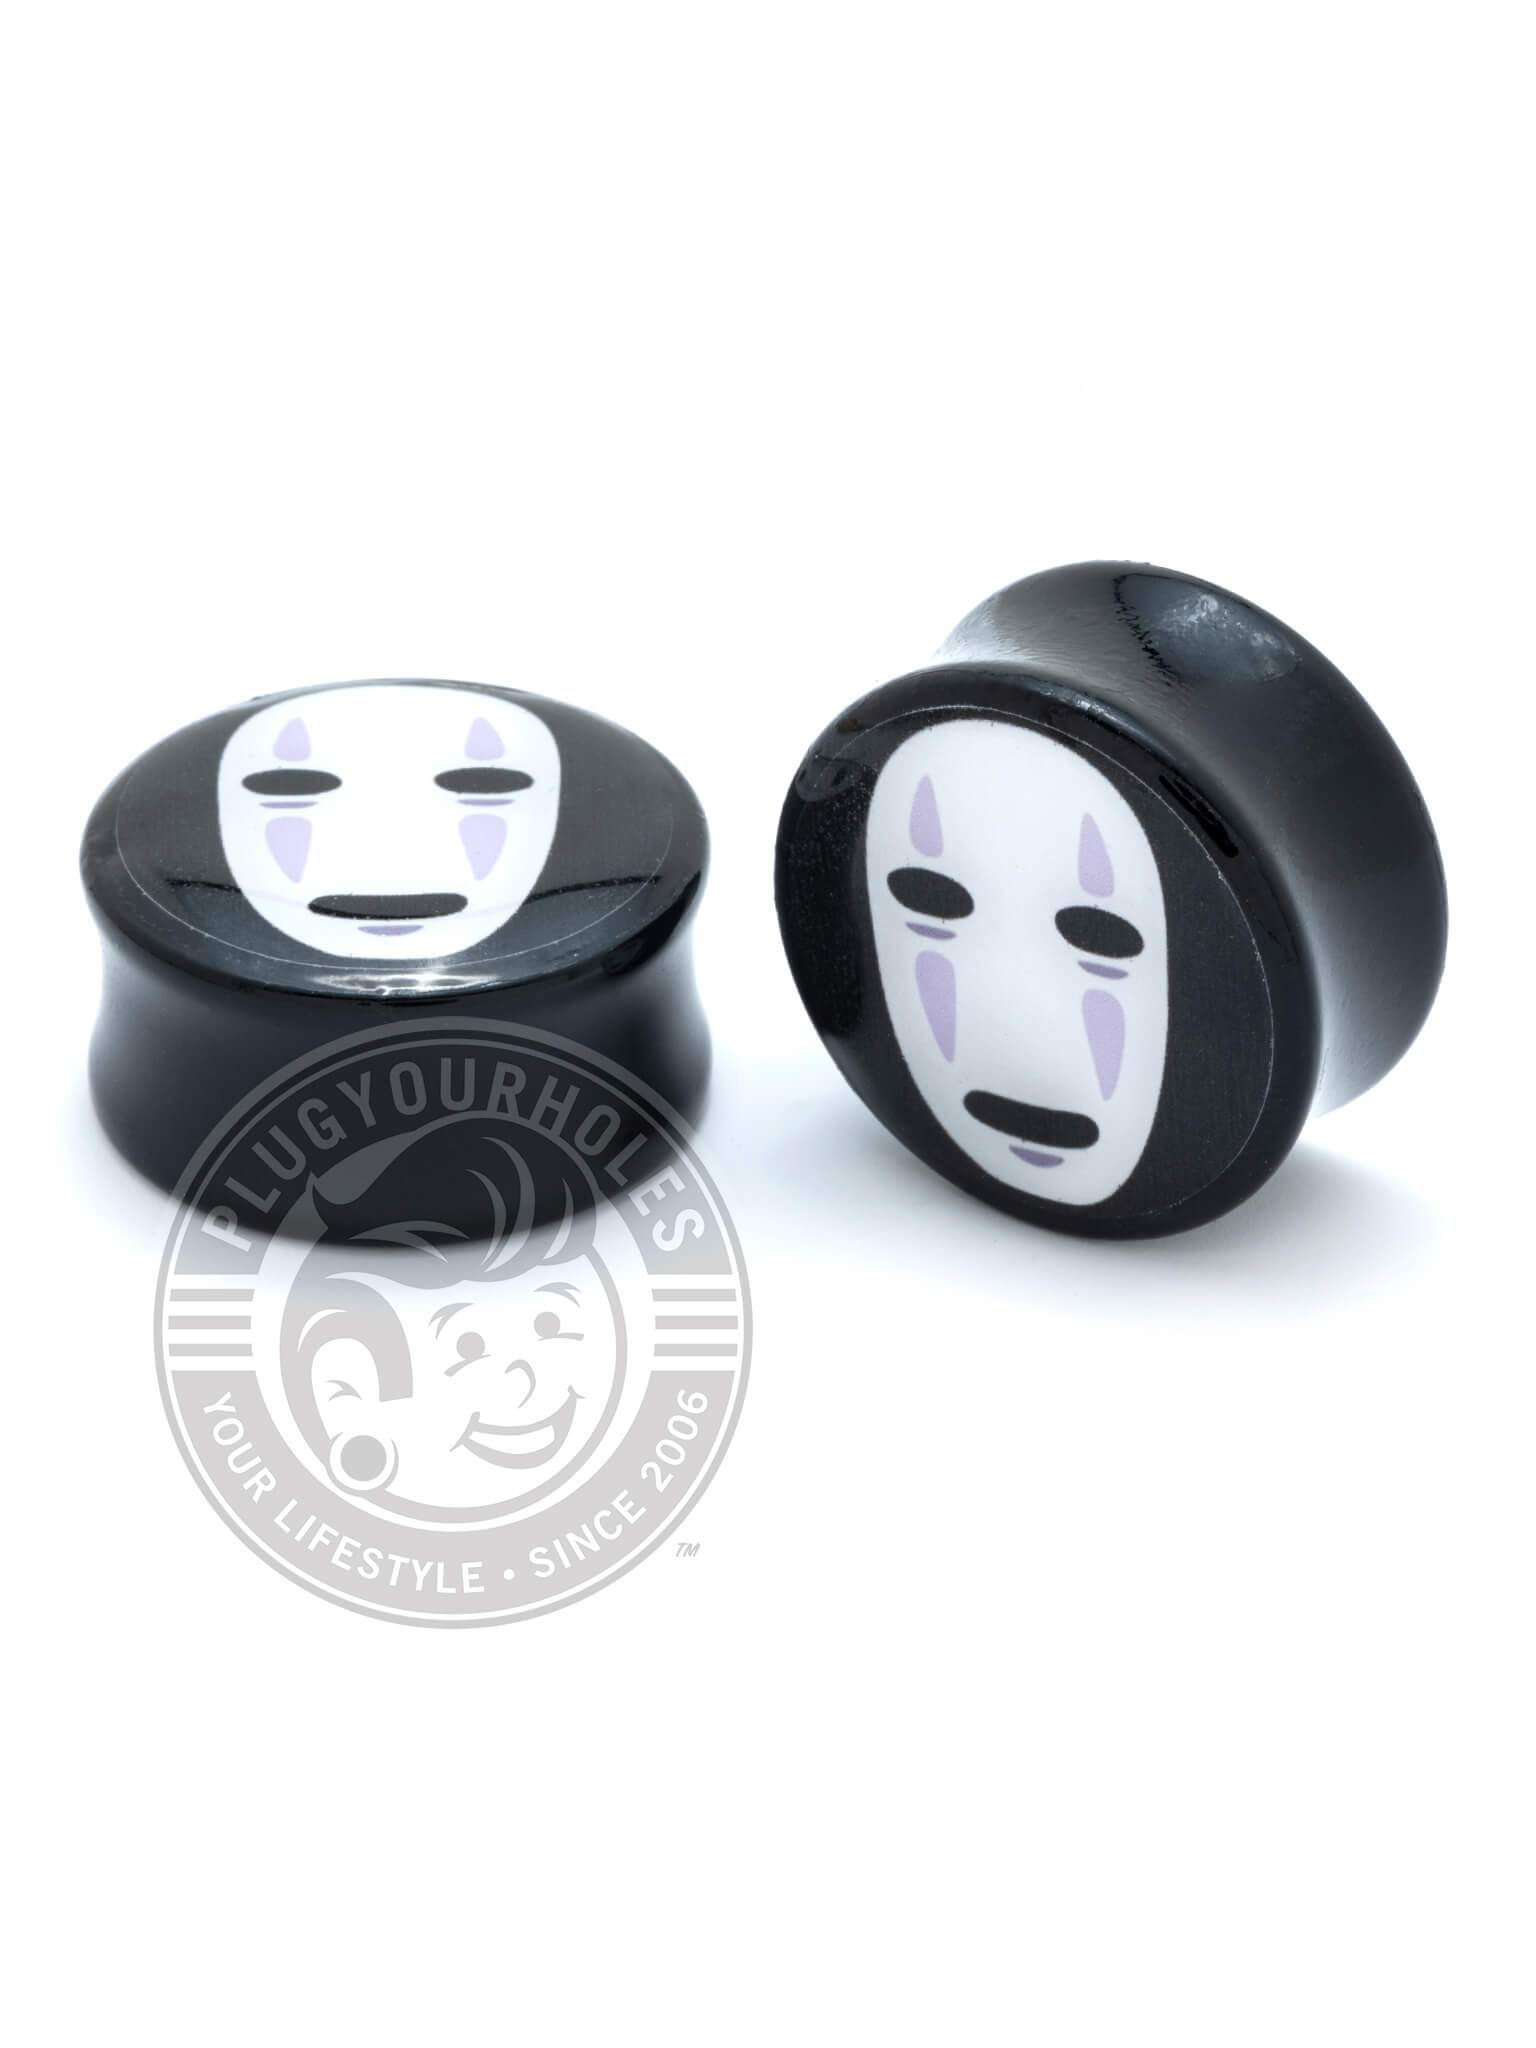 No Face - Acrylic - Image Plugs